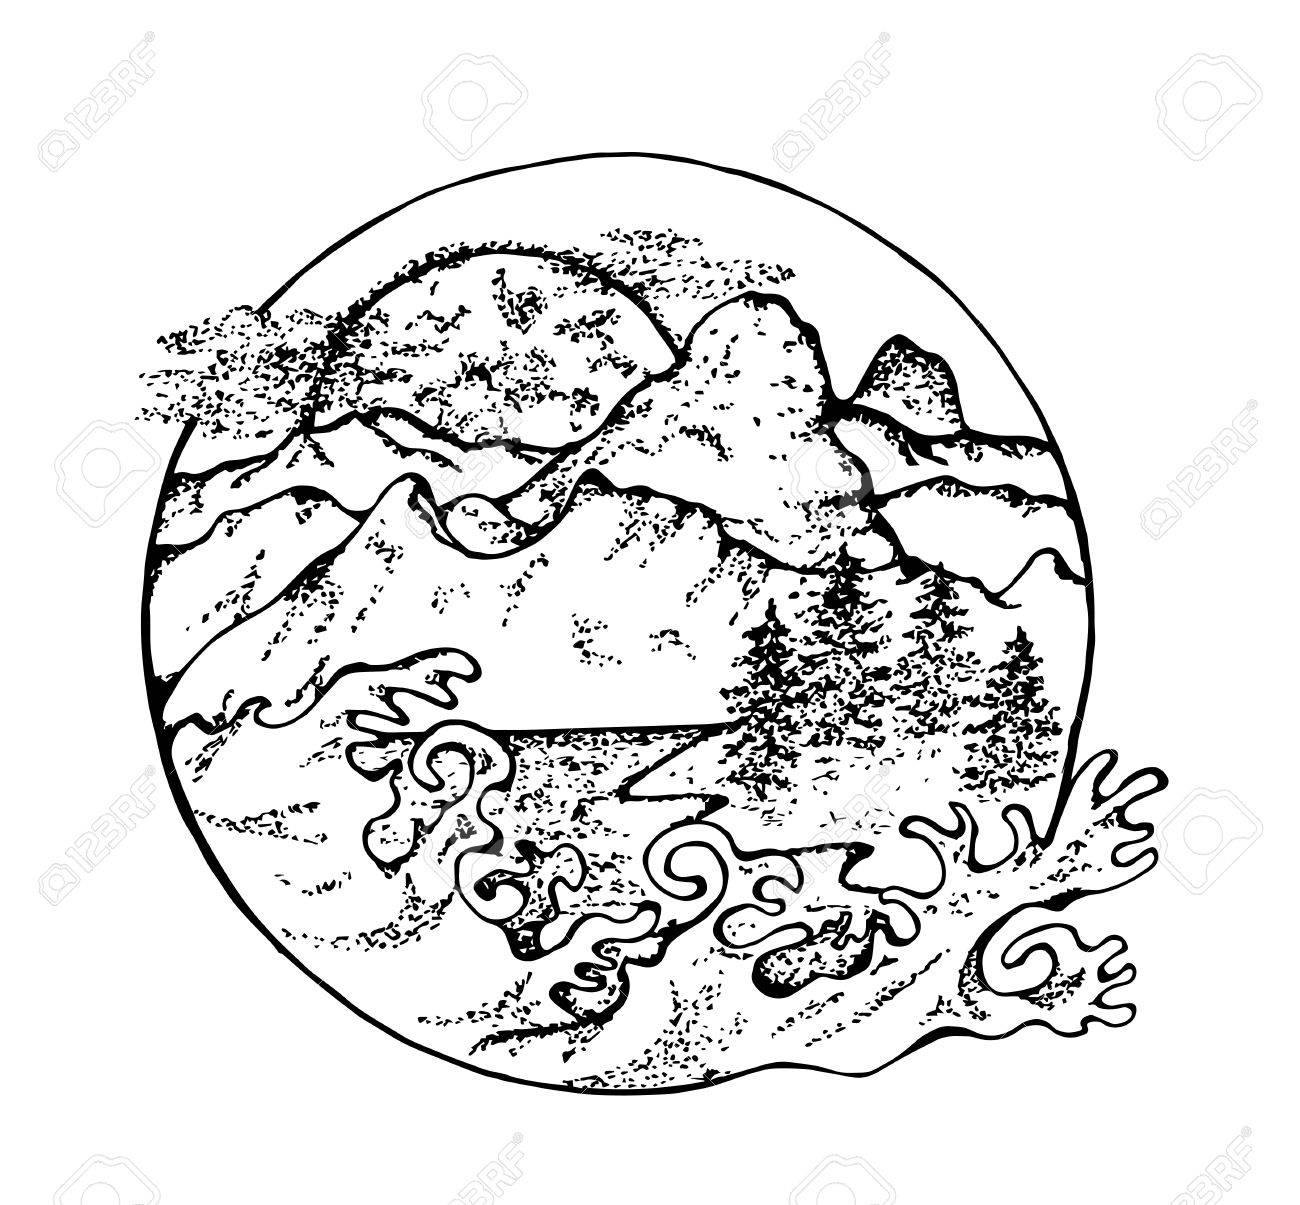 1300x1205 Illustration Of Fir, Moon, Clouds And Japanese Waves. Royalty Free